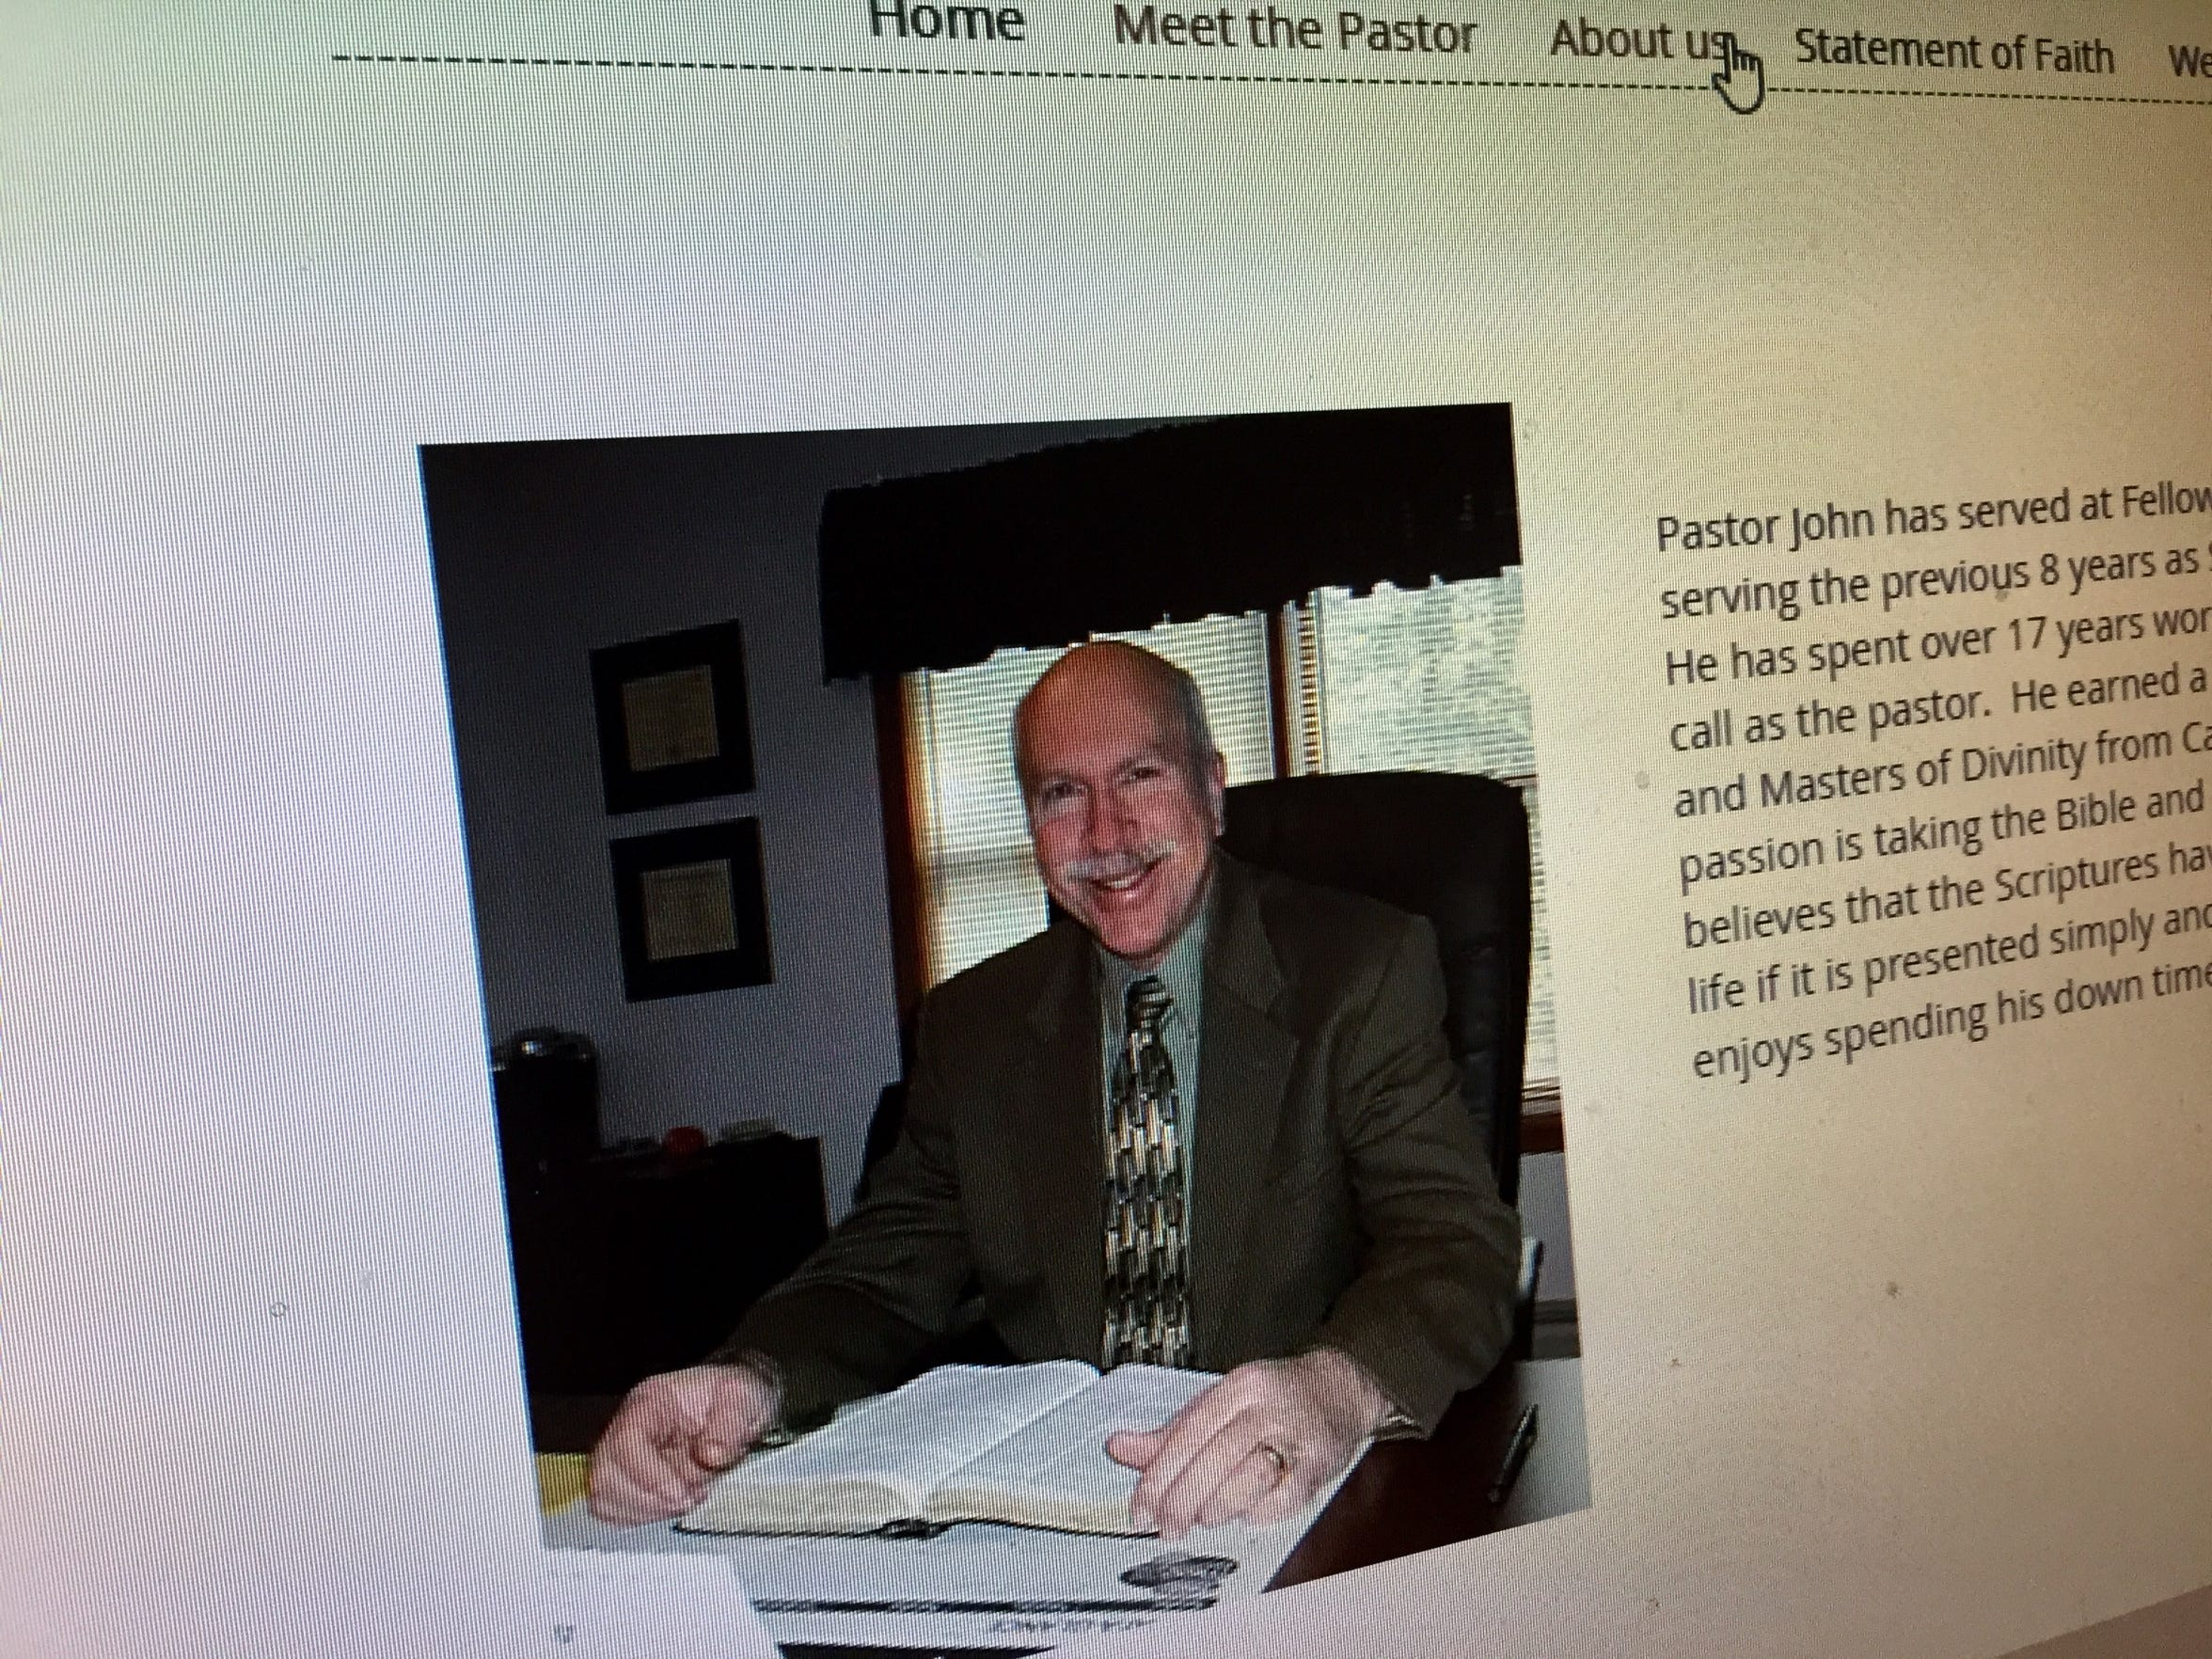 John Longaker, the pastor of Fellowship Bible Church, is pictured on the church website.